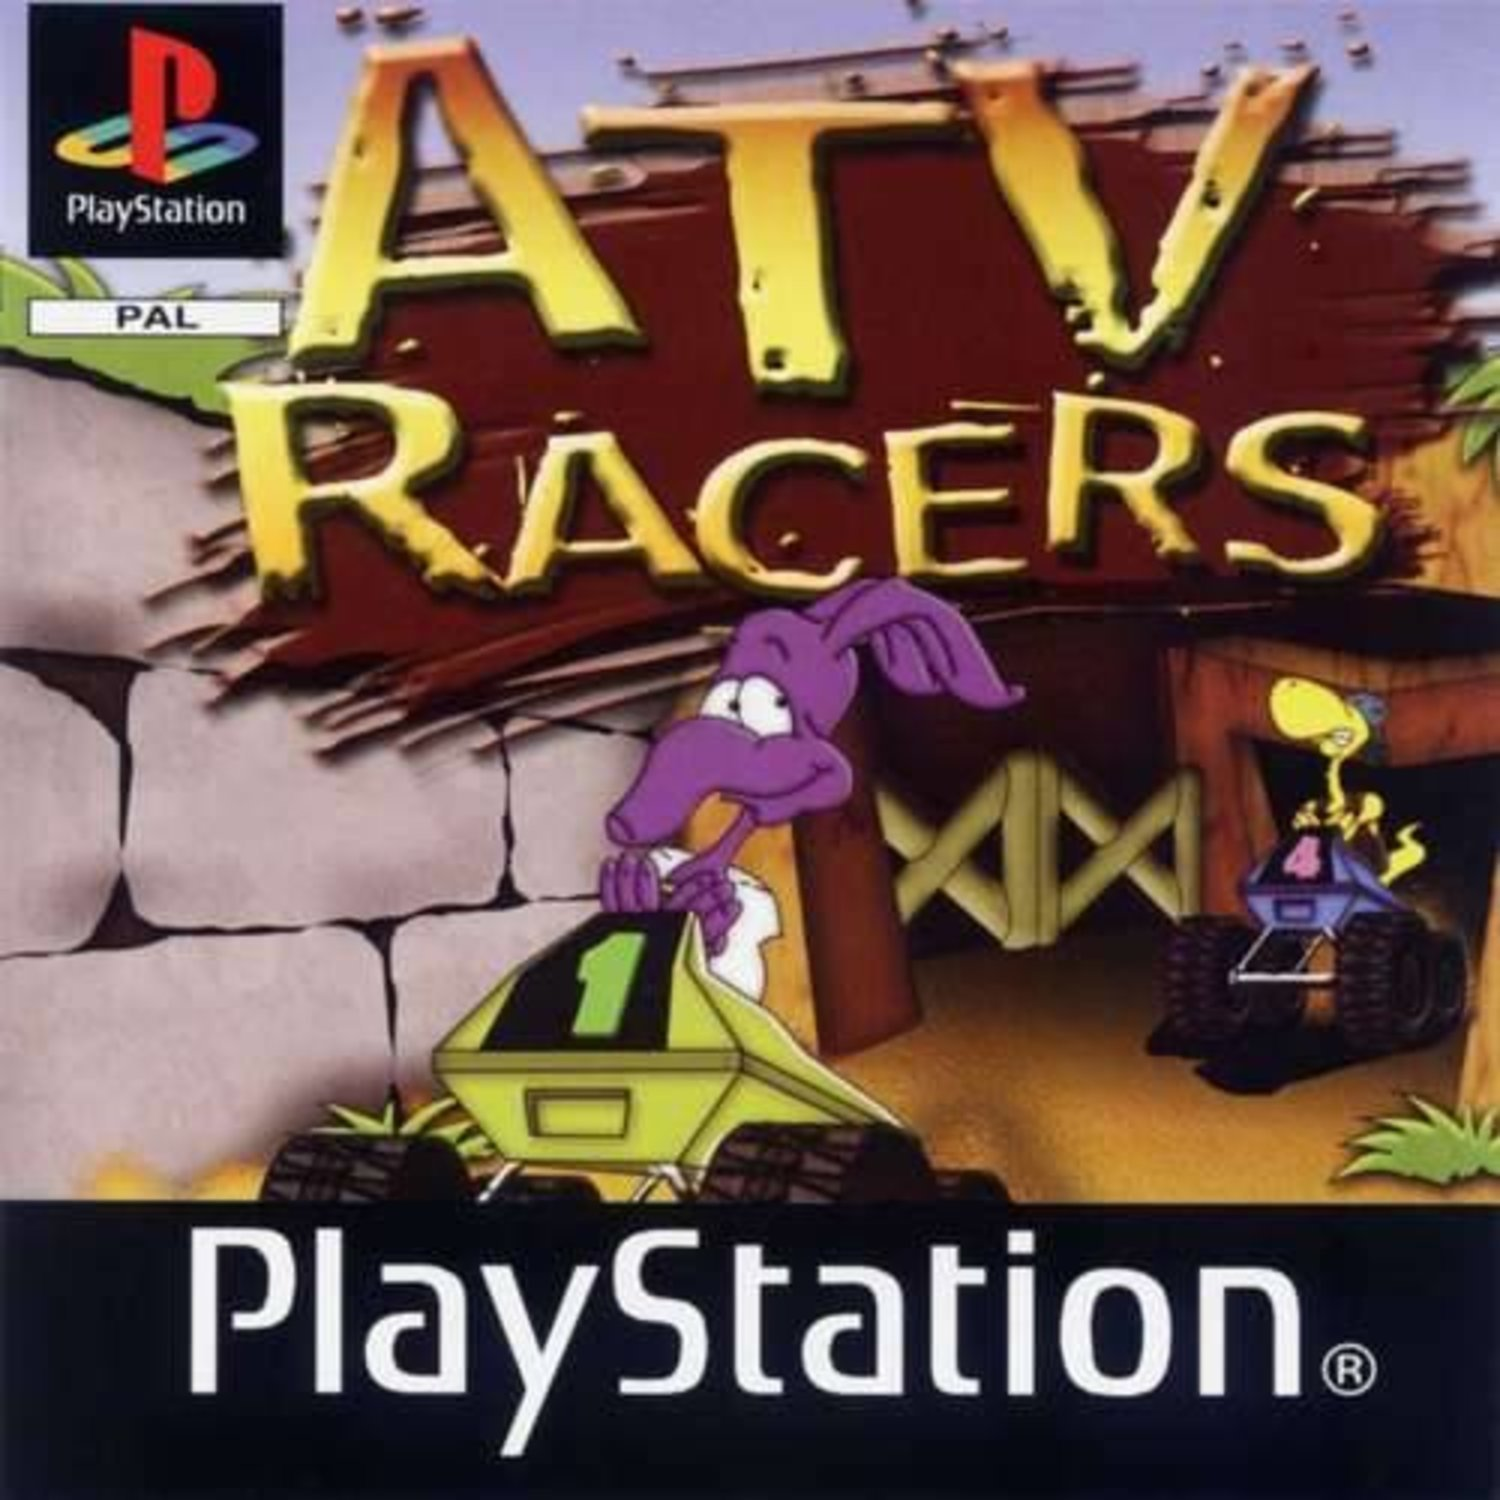 ATV Racers - Playstation